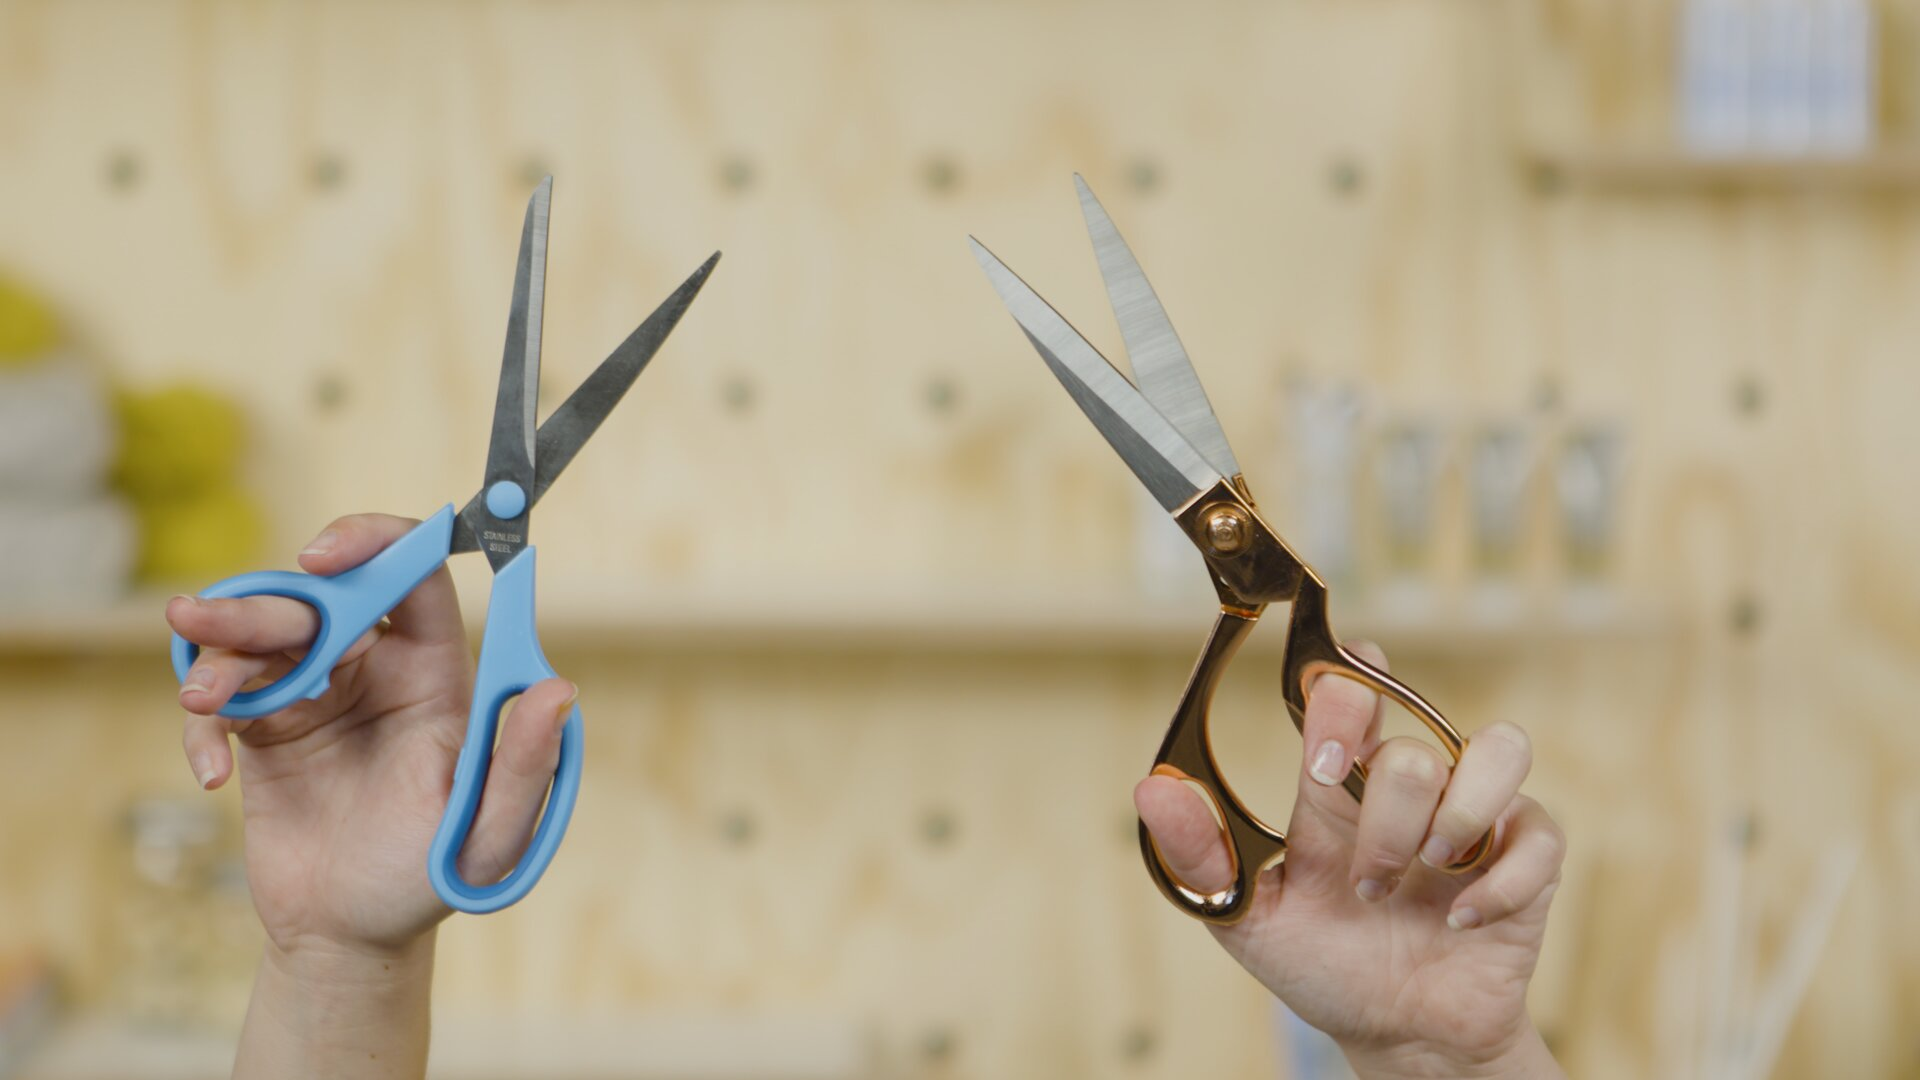 Shop Our Extensive Range Of Scissors